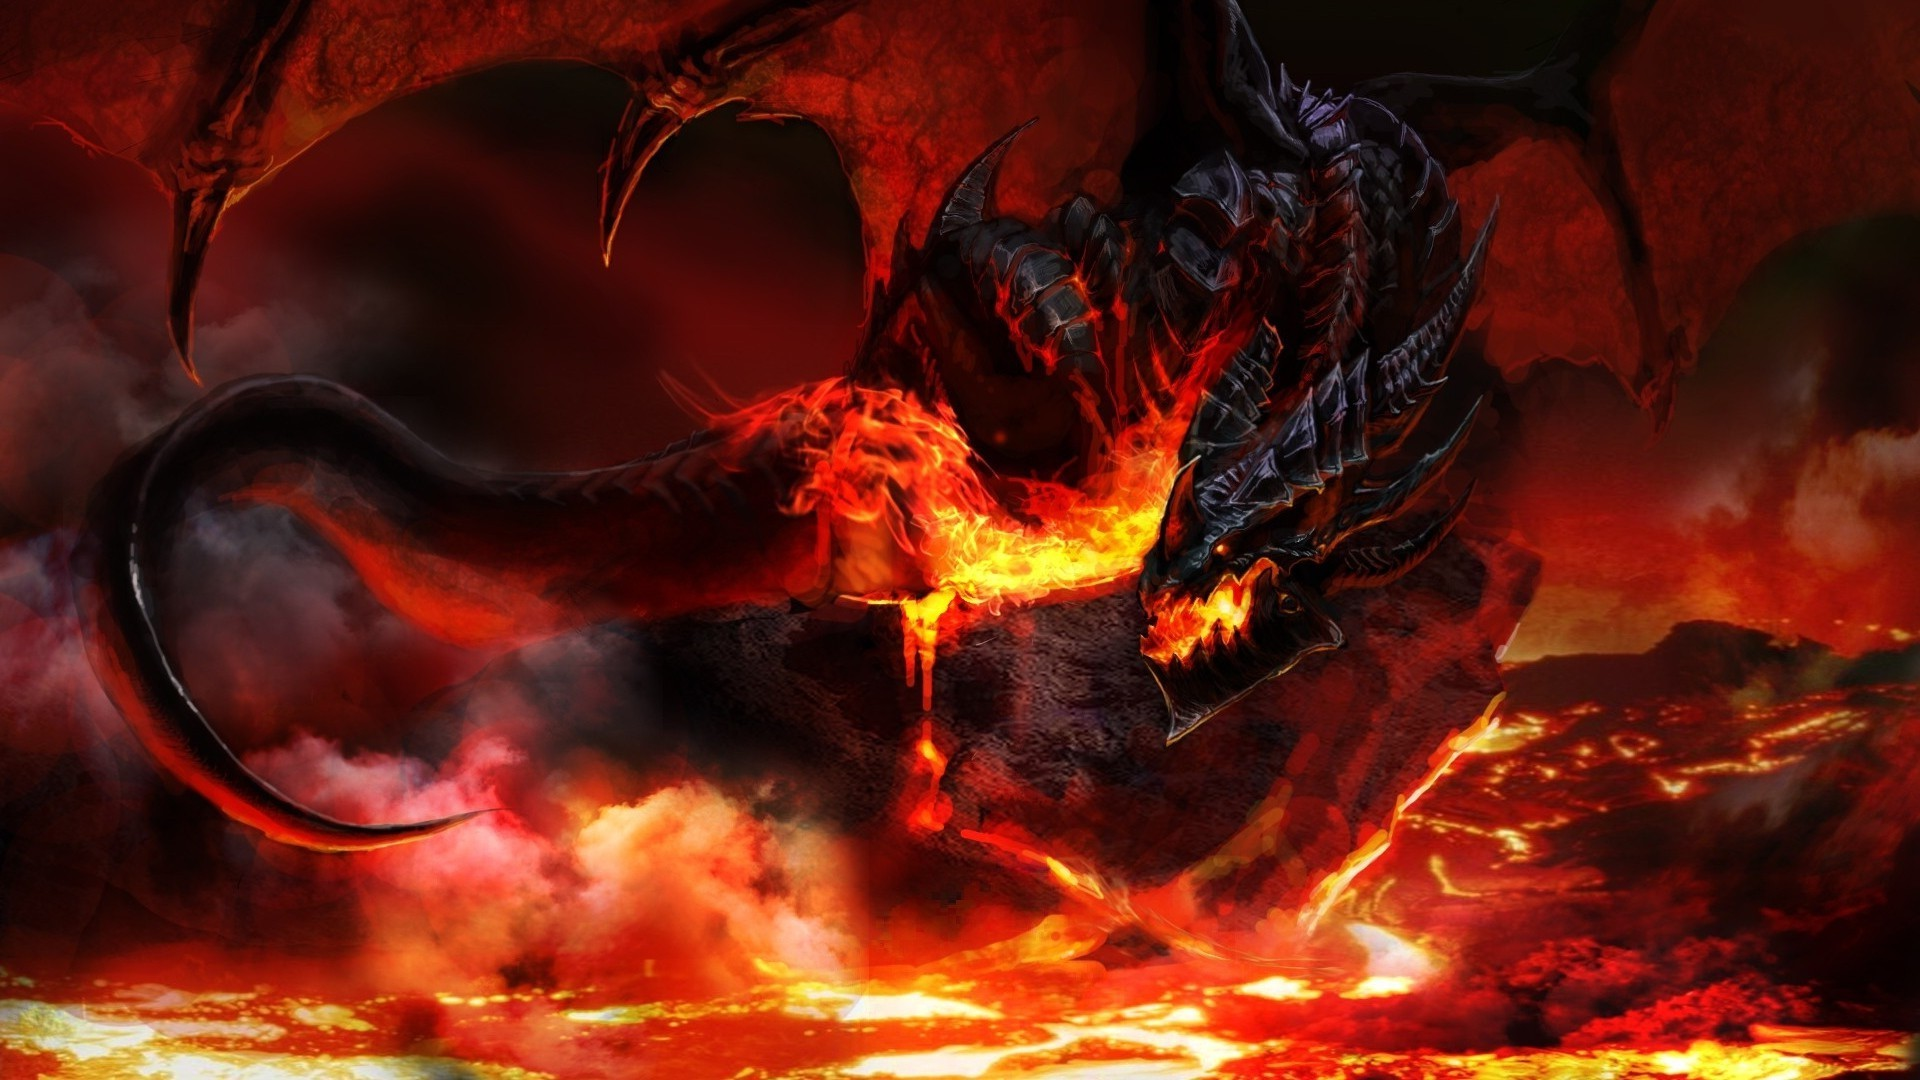 Red Fire Dragon: Red Dragon Wallpapers (60+ Images